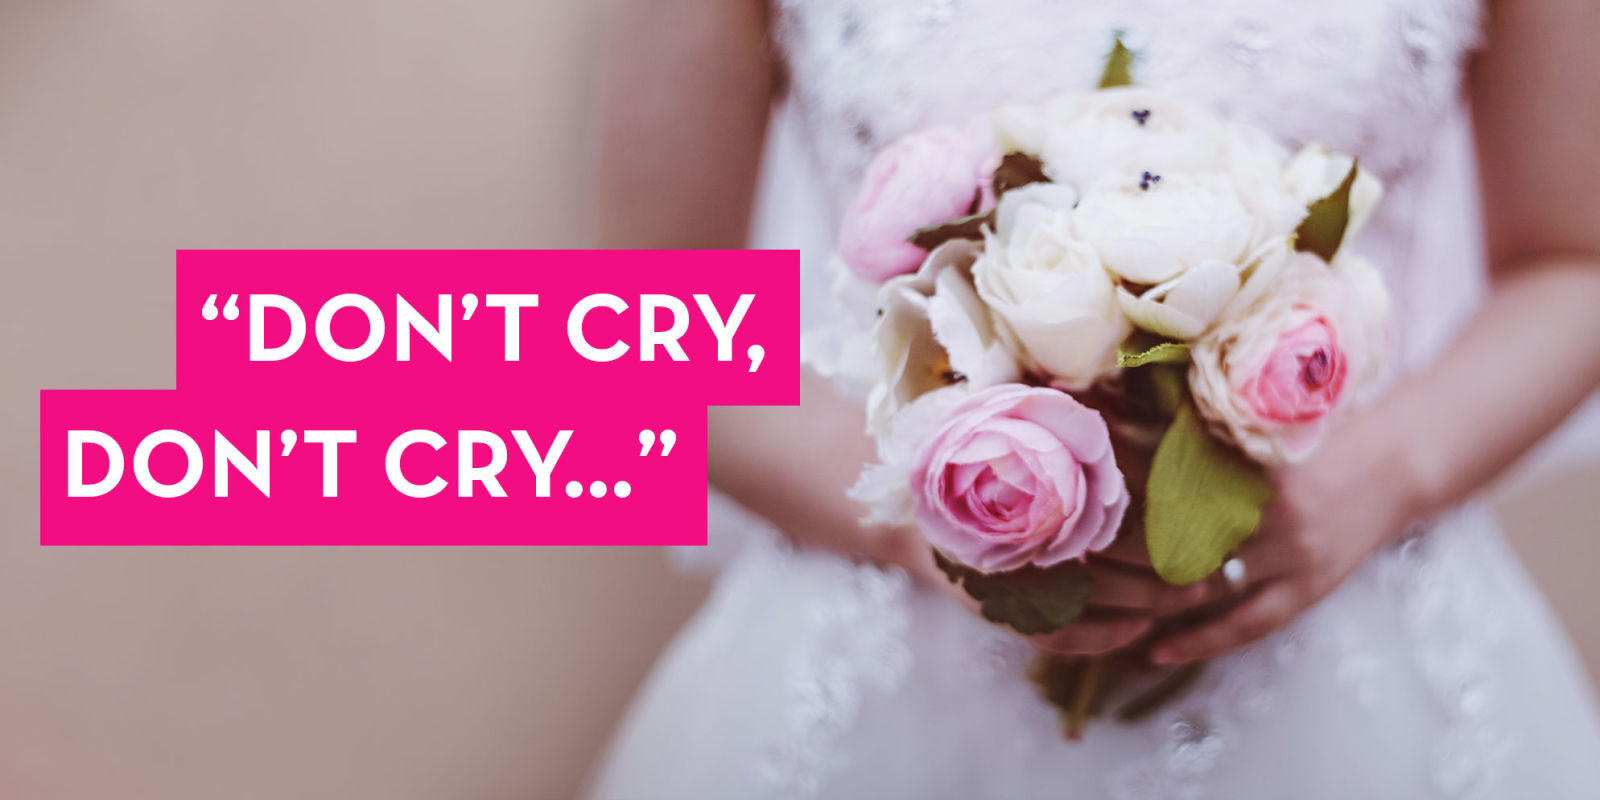 15 Motivational Wedding Quotes To Inspire Brides